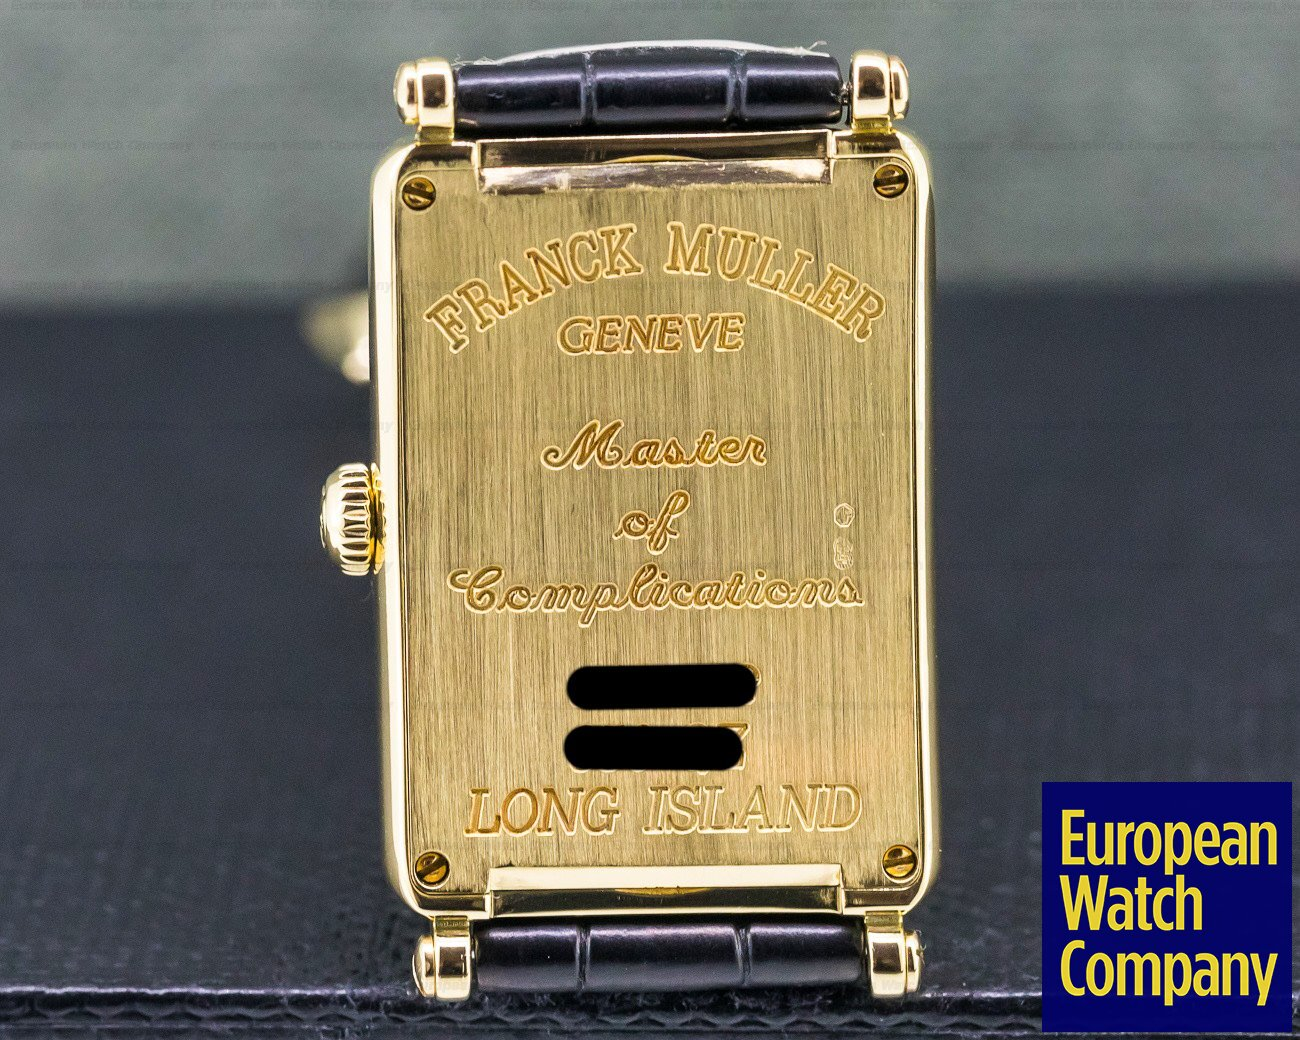 Franck Muller 950 QZ Long Island 18k Yellow Gold